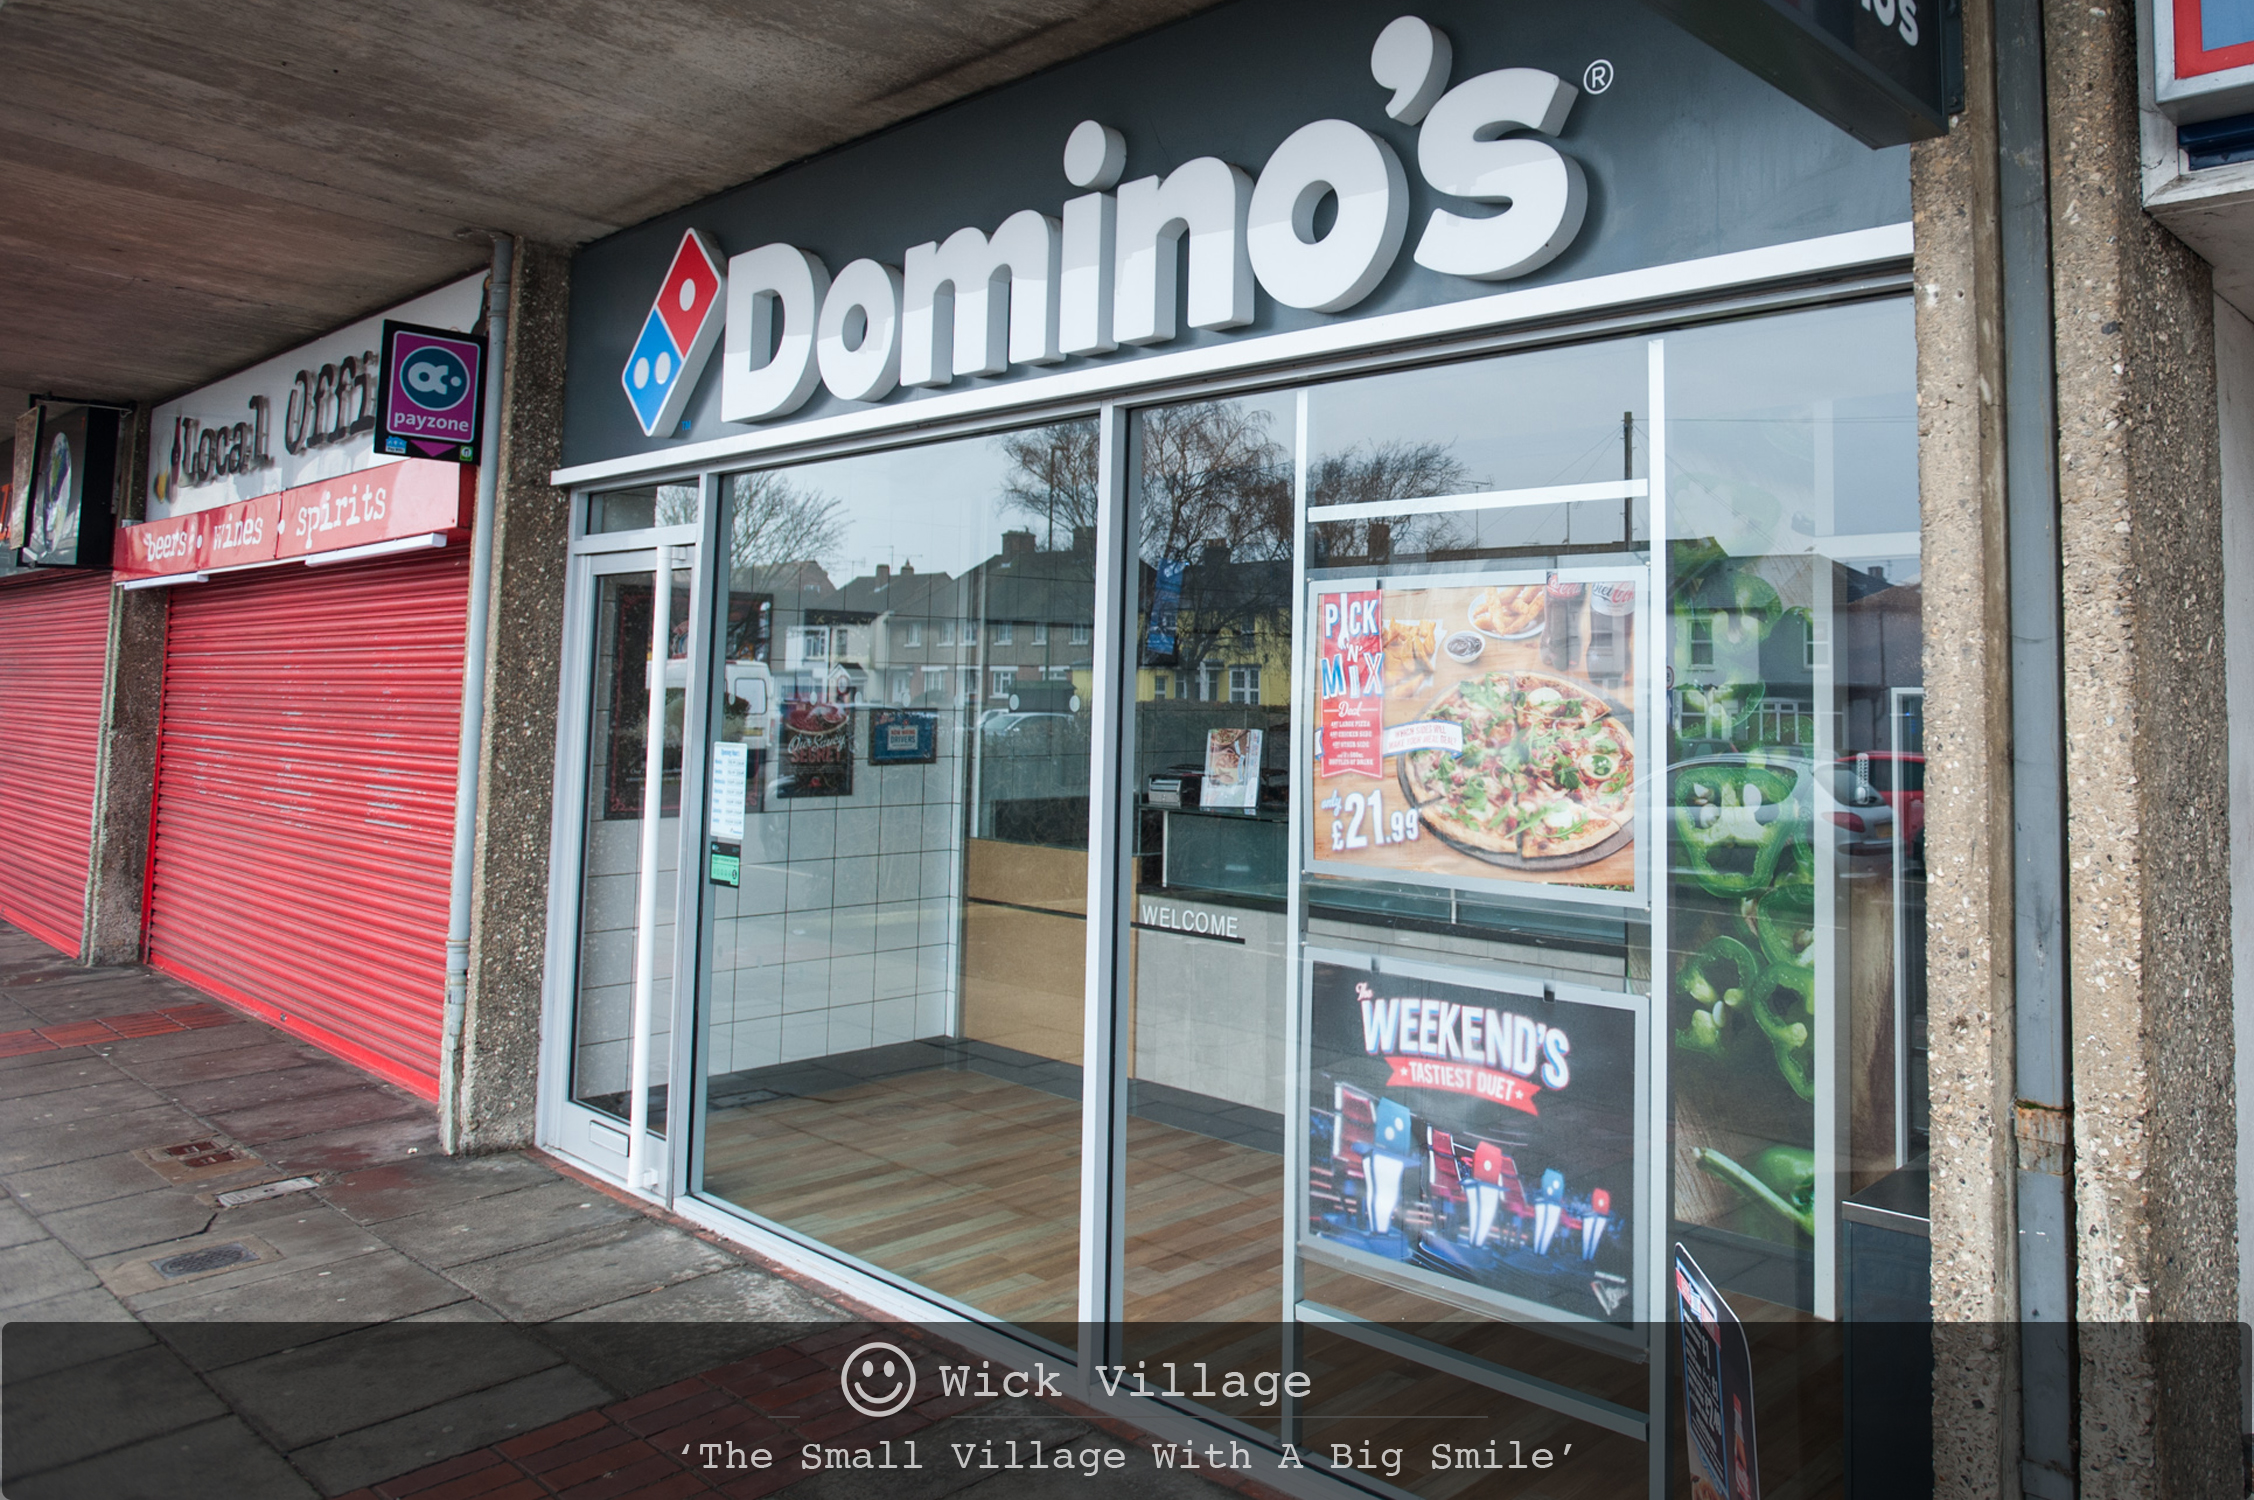 Domino's Pizza in Wick Village, Littlehampton.